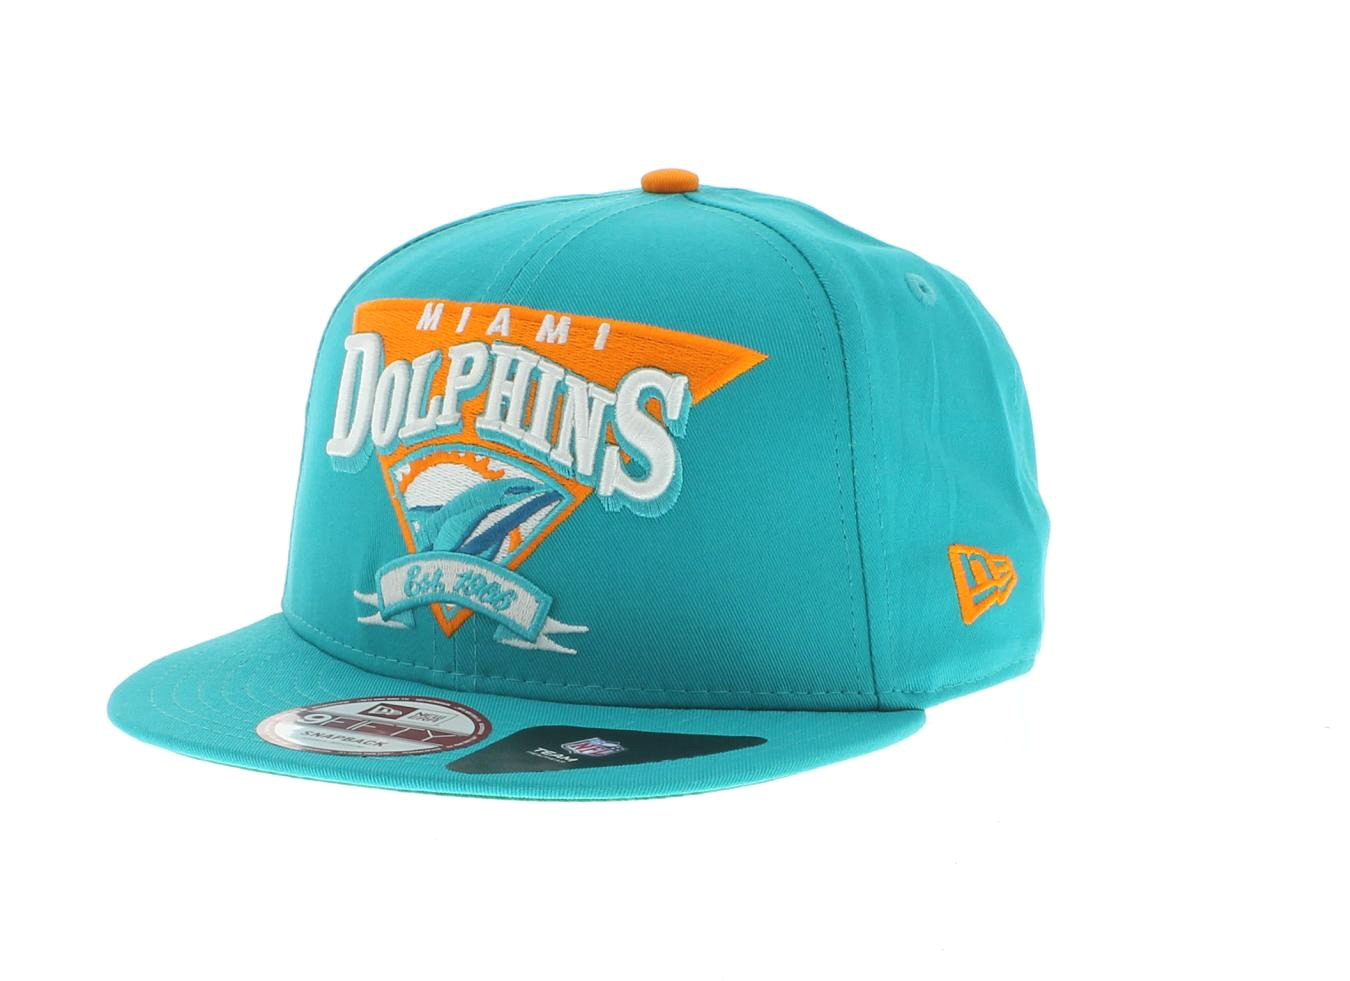 2 miami dolphins nfl the team angle snapback 950 9fifty team colors by new era cap